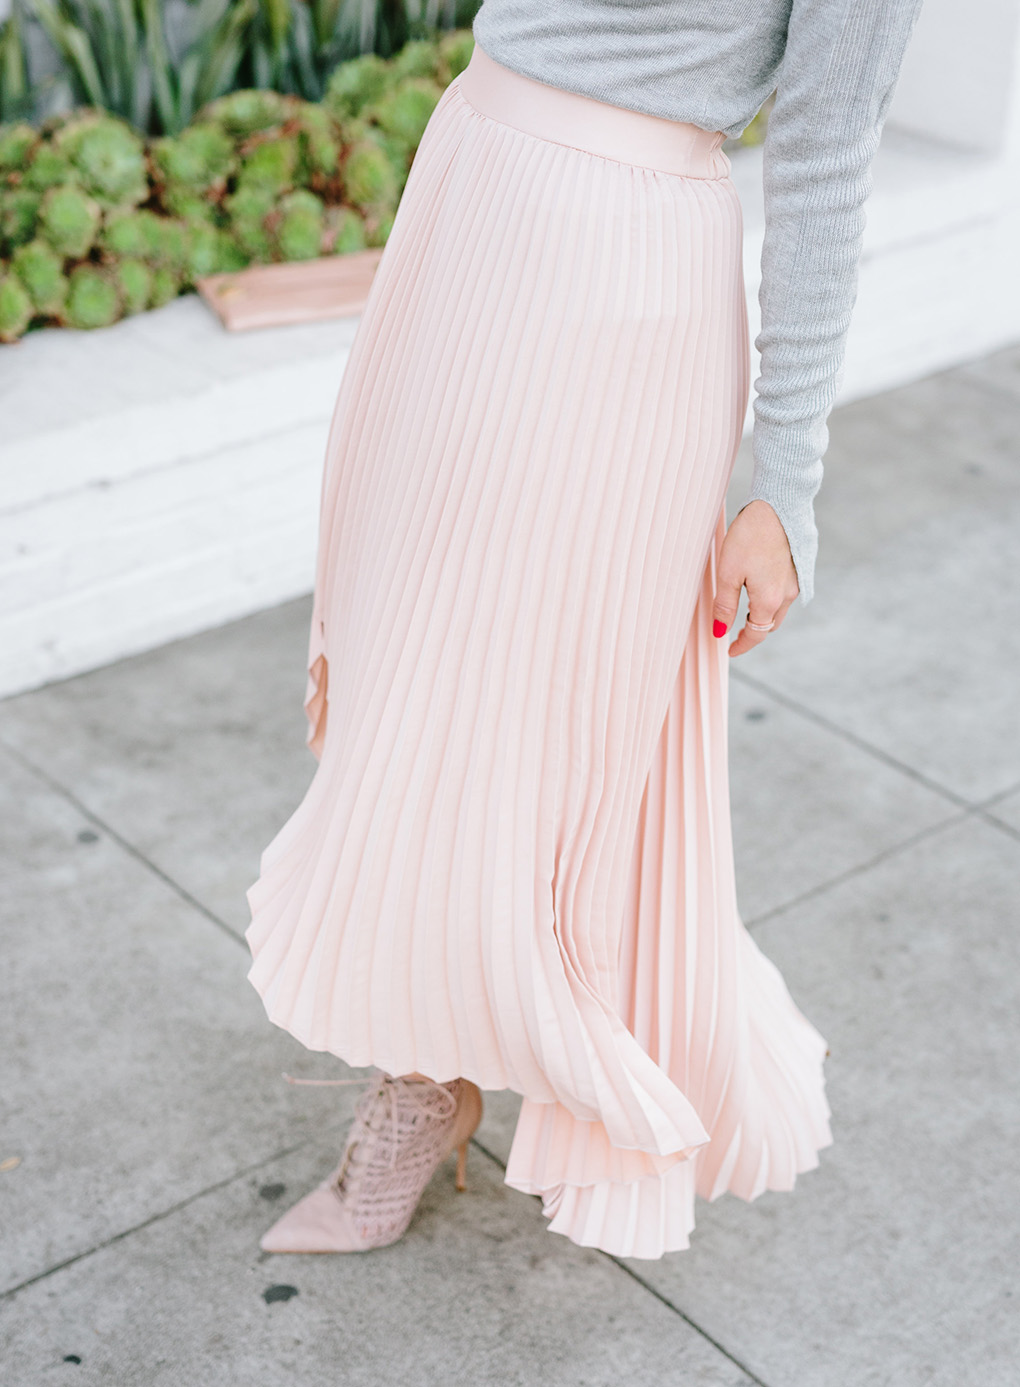 Sydne Style shows the best pleated skirts online for holiday parties